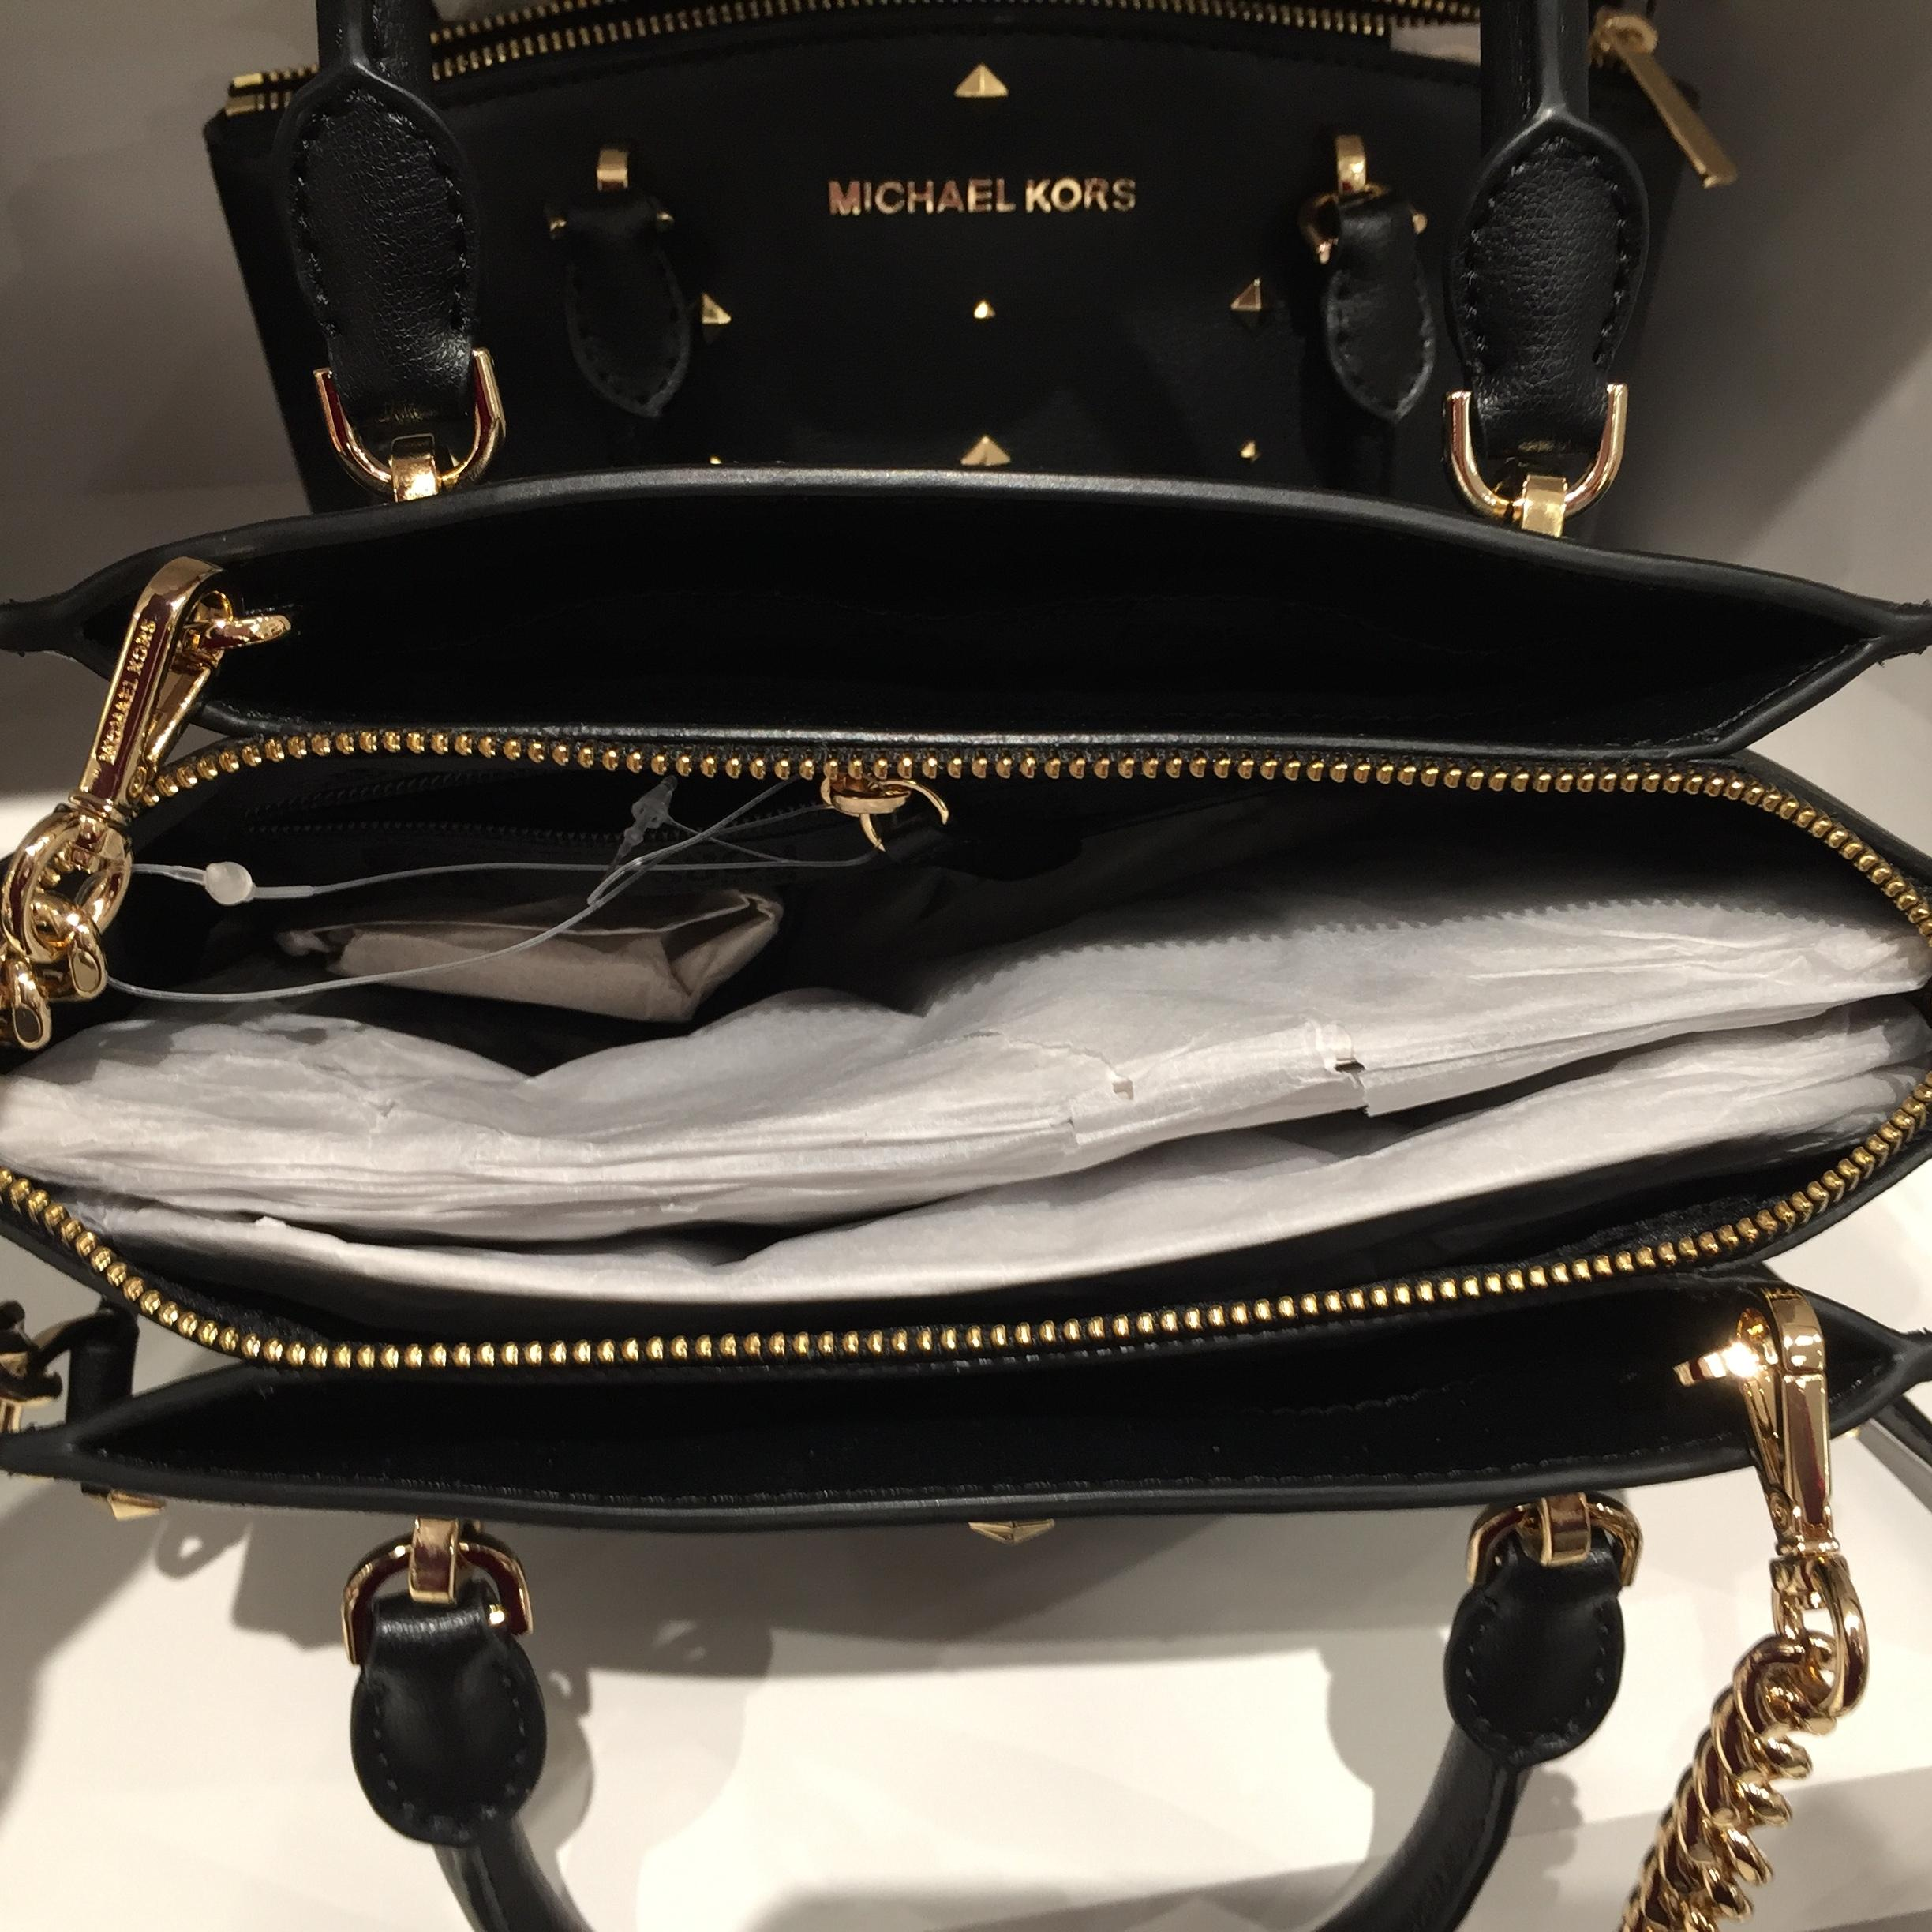 f5f6712468c3 ... australia michael kors mk ellis small gold studs crossbody strap  matching walle satchel in black.